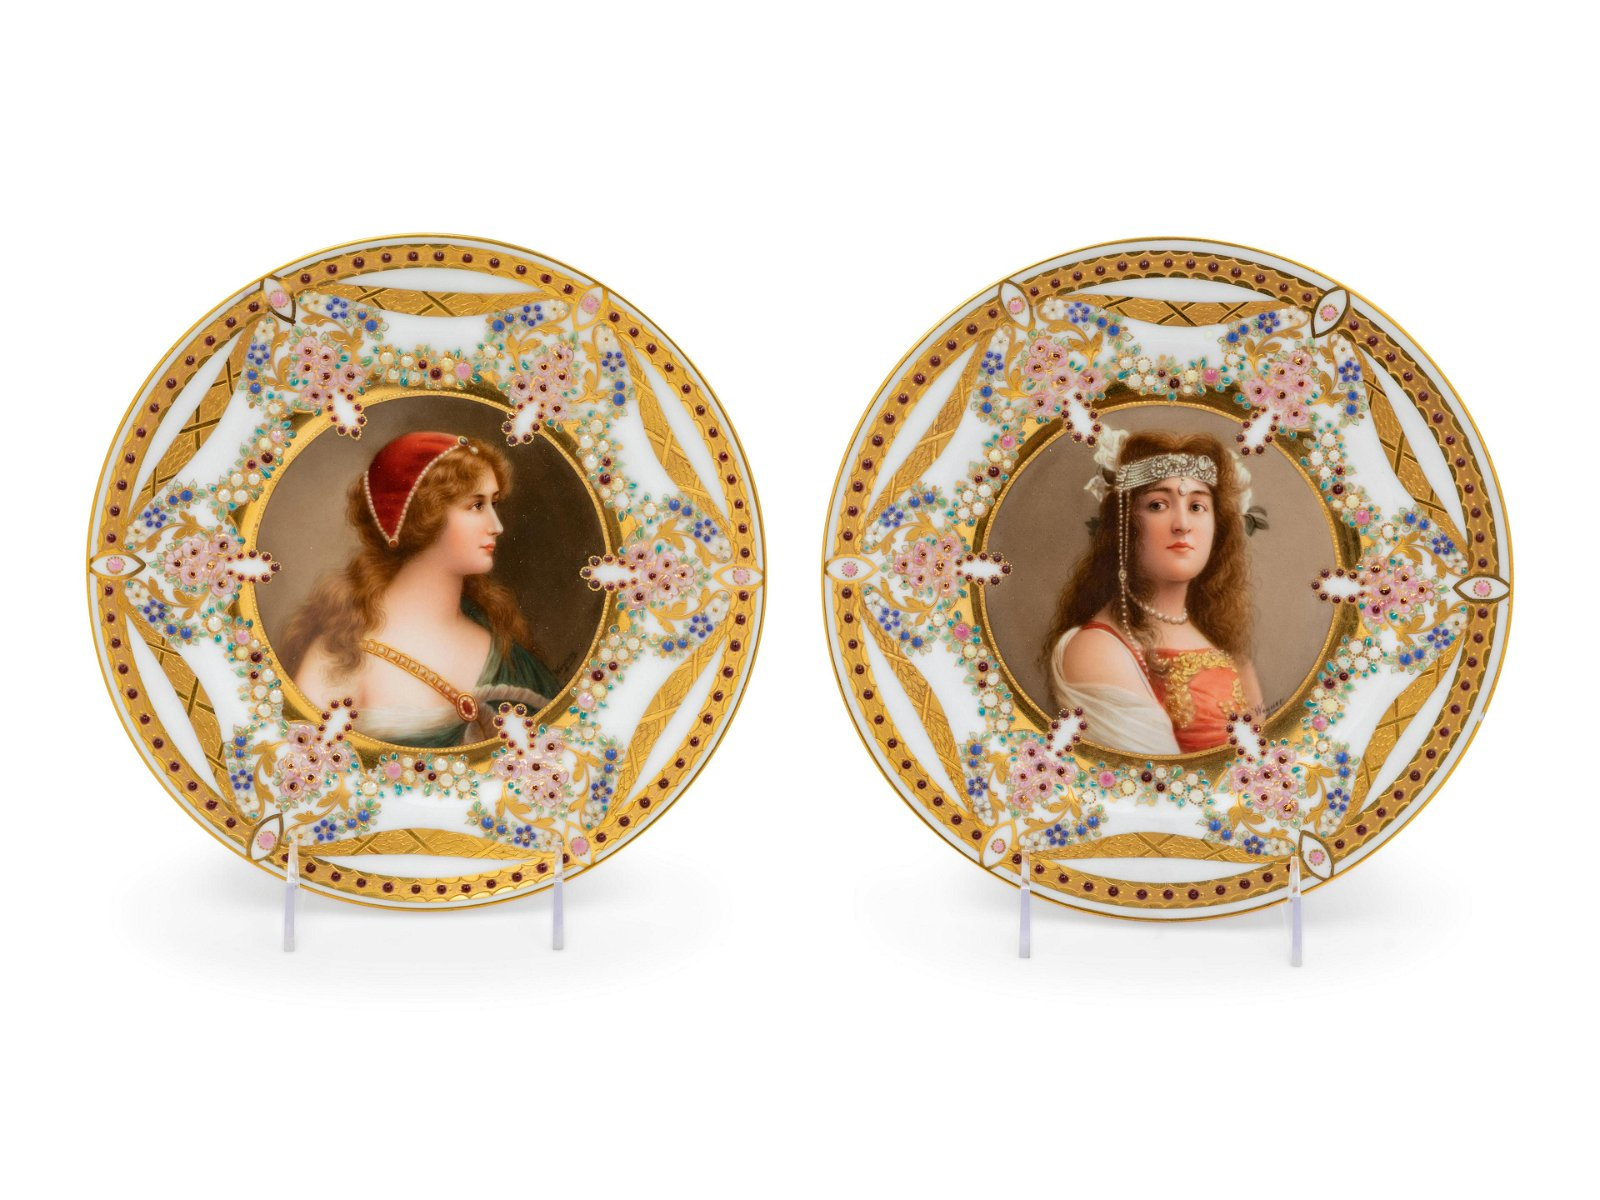 A Pair of Vienna Porcelain Cabinet Plates